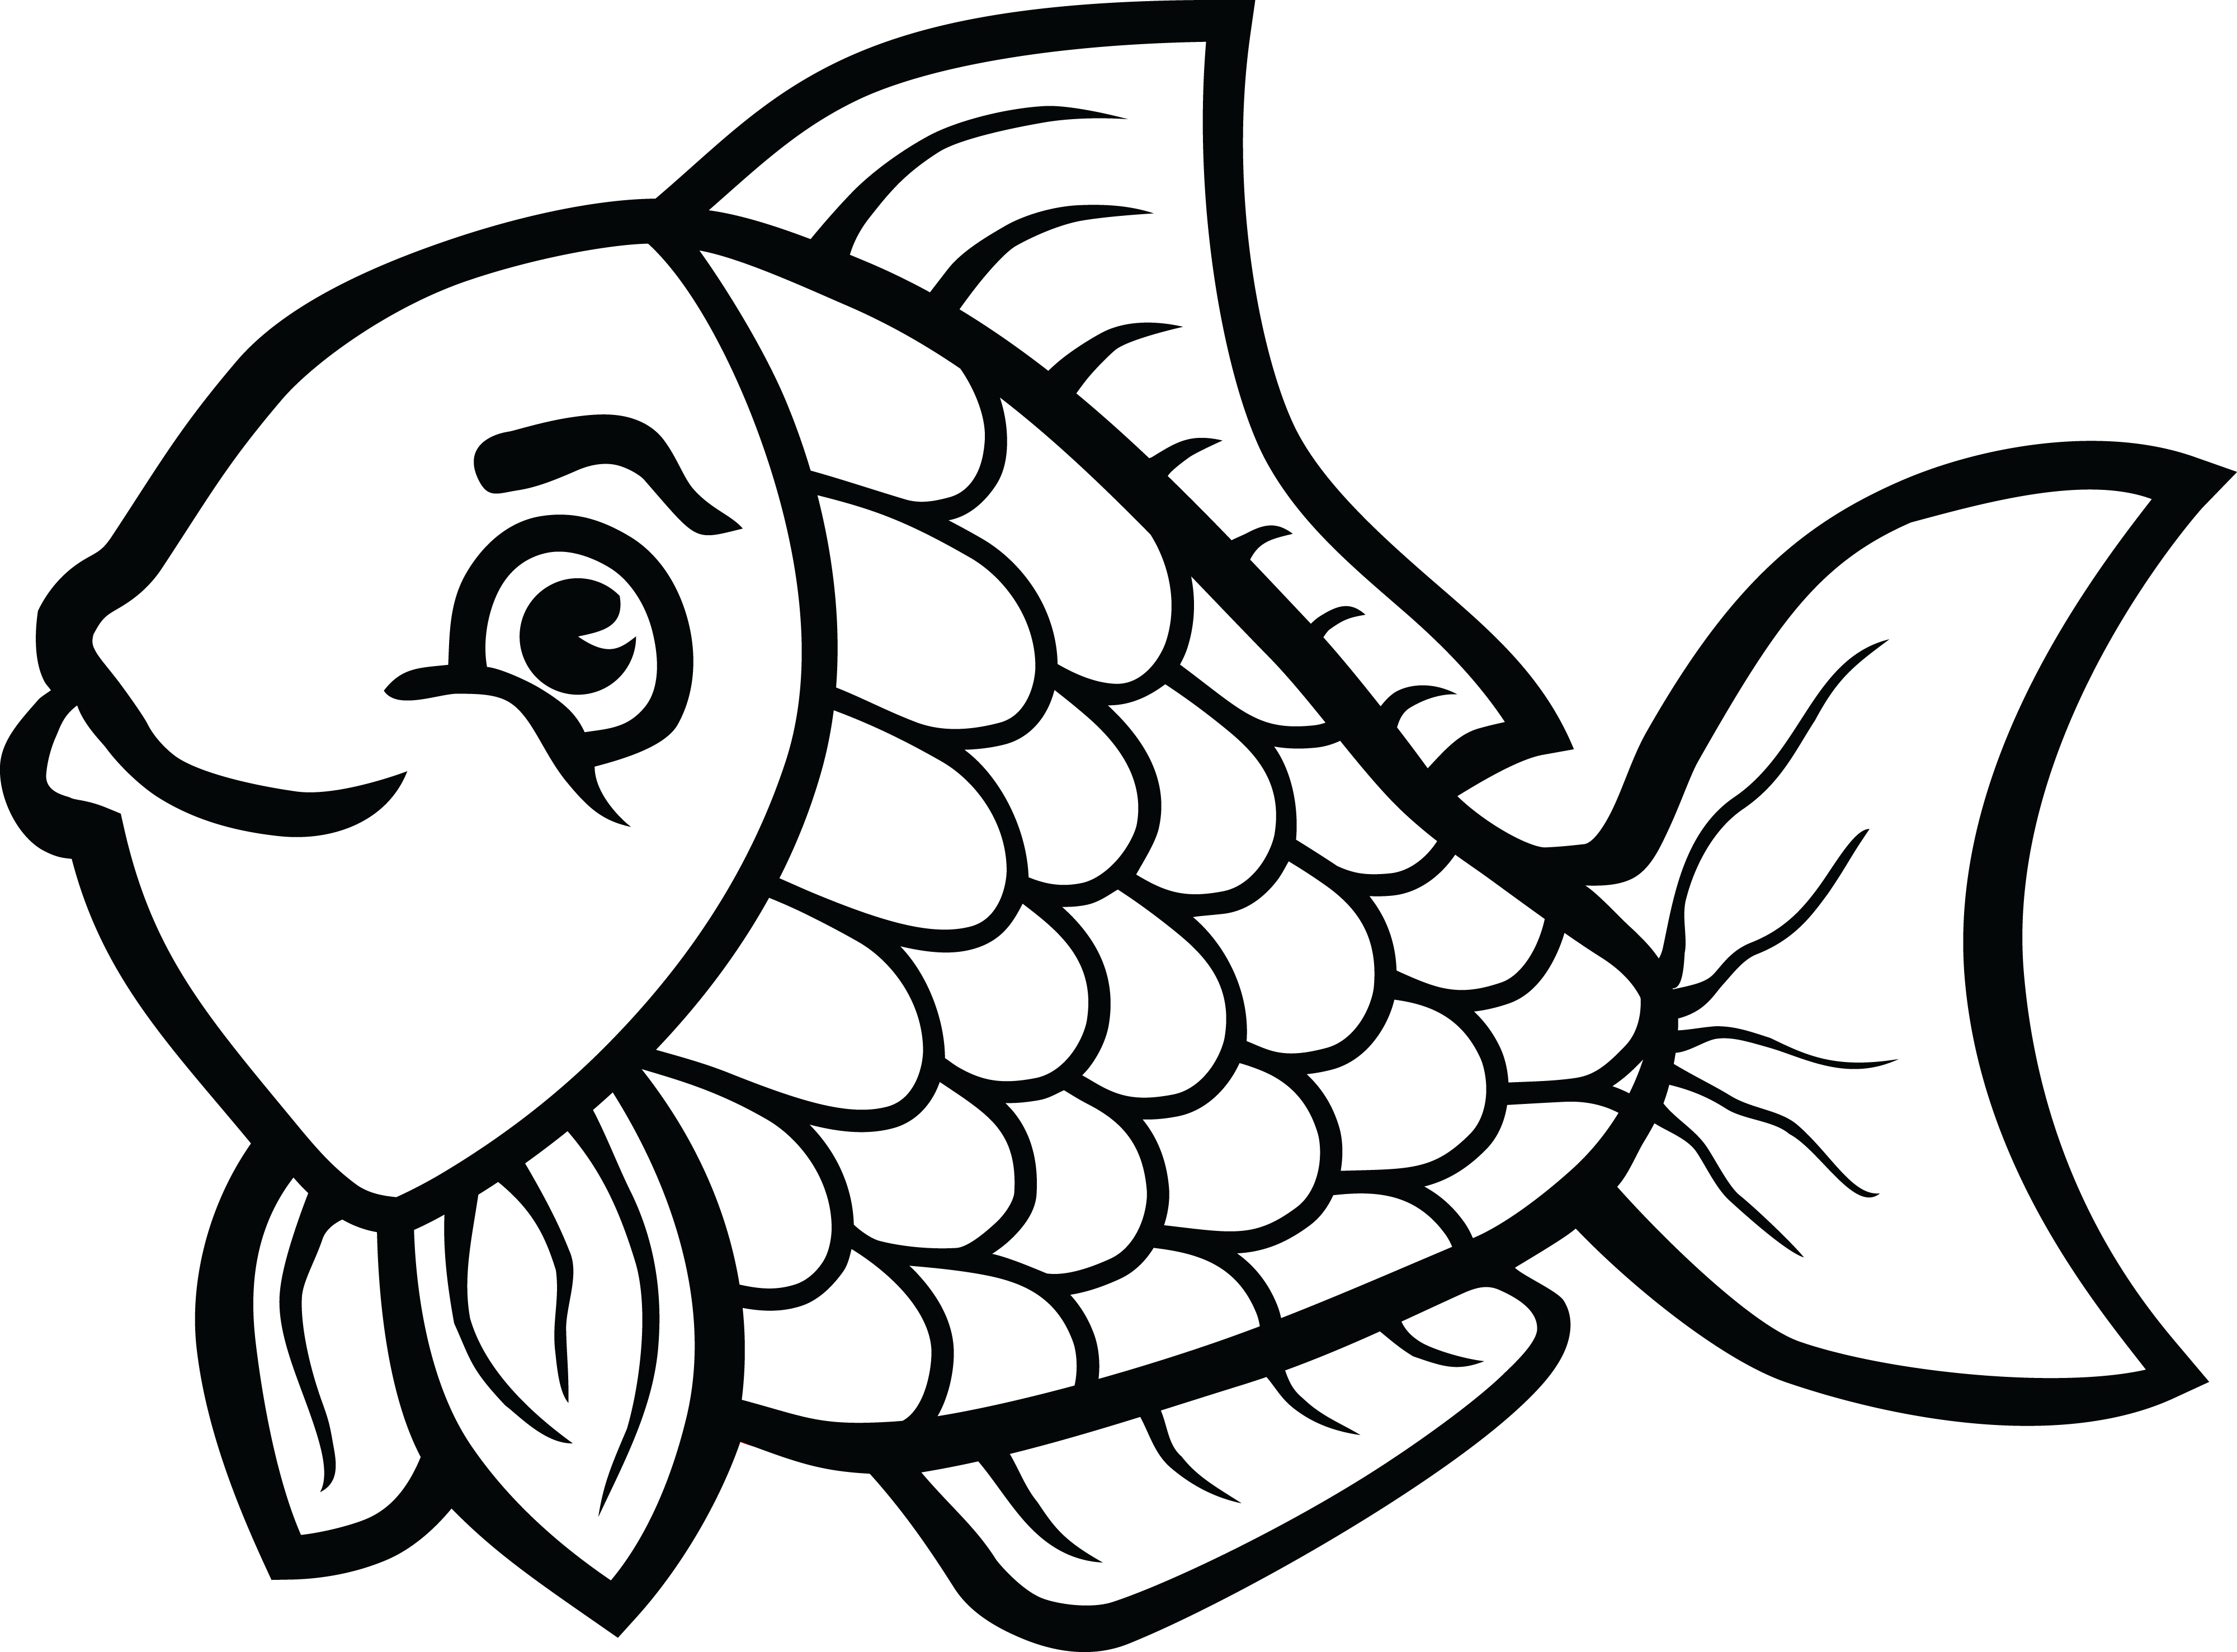 Fishing clipart black and white, Fishing black and white.